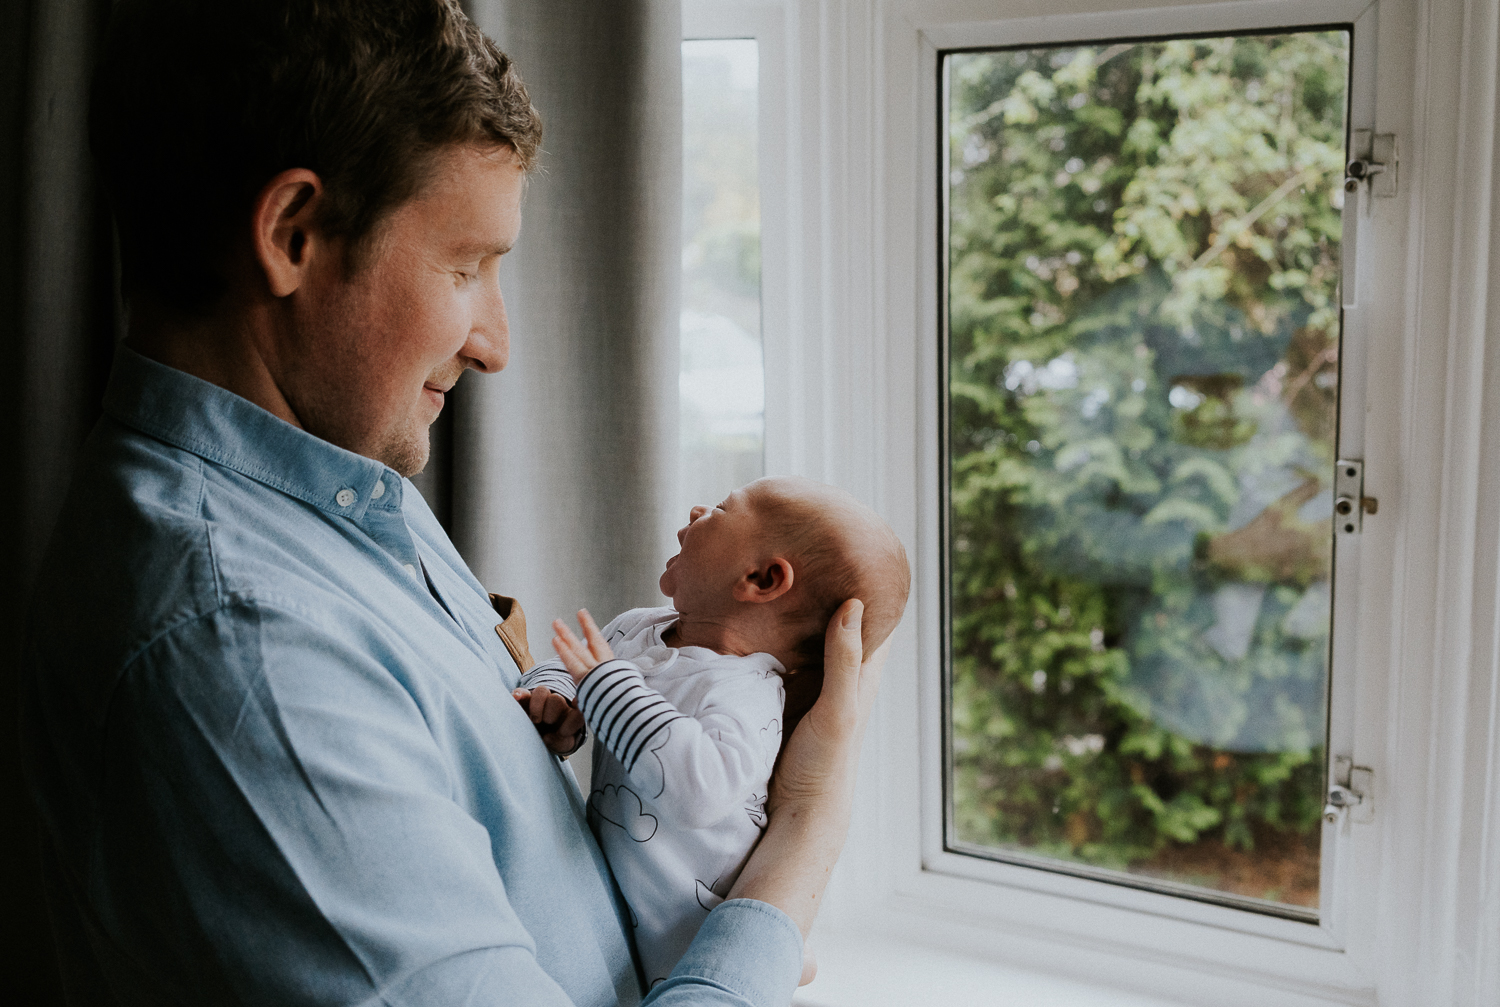 newborn photo session at home in highgate photo of baby boy with father